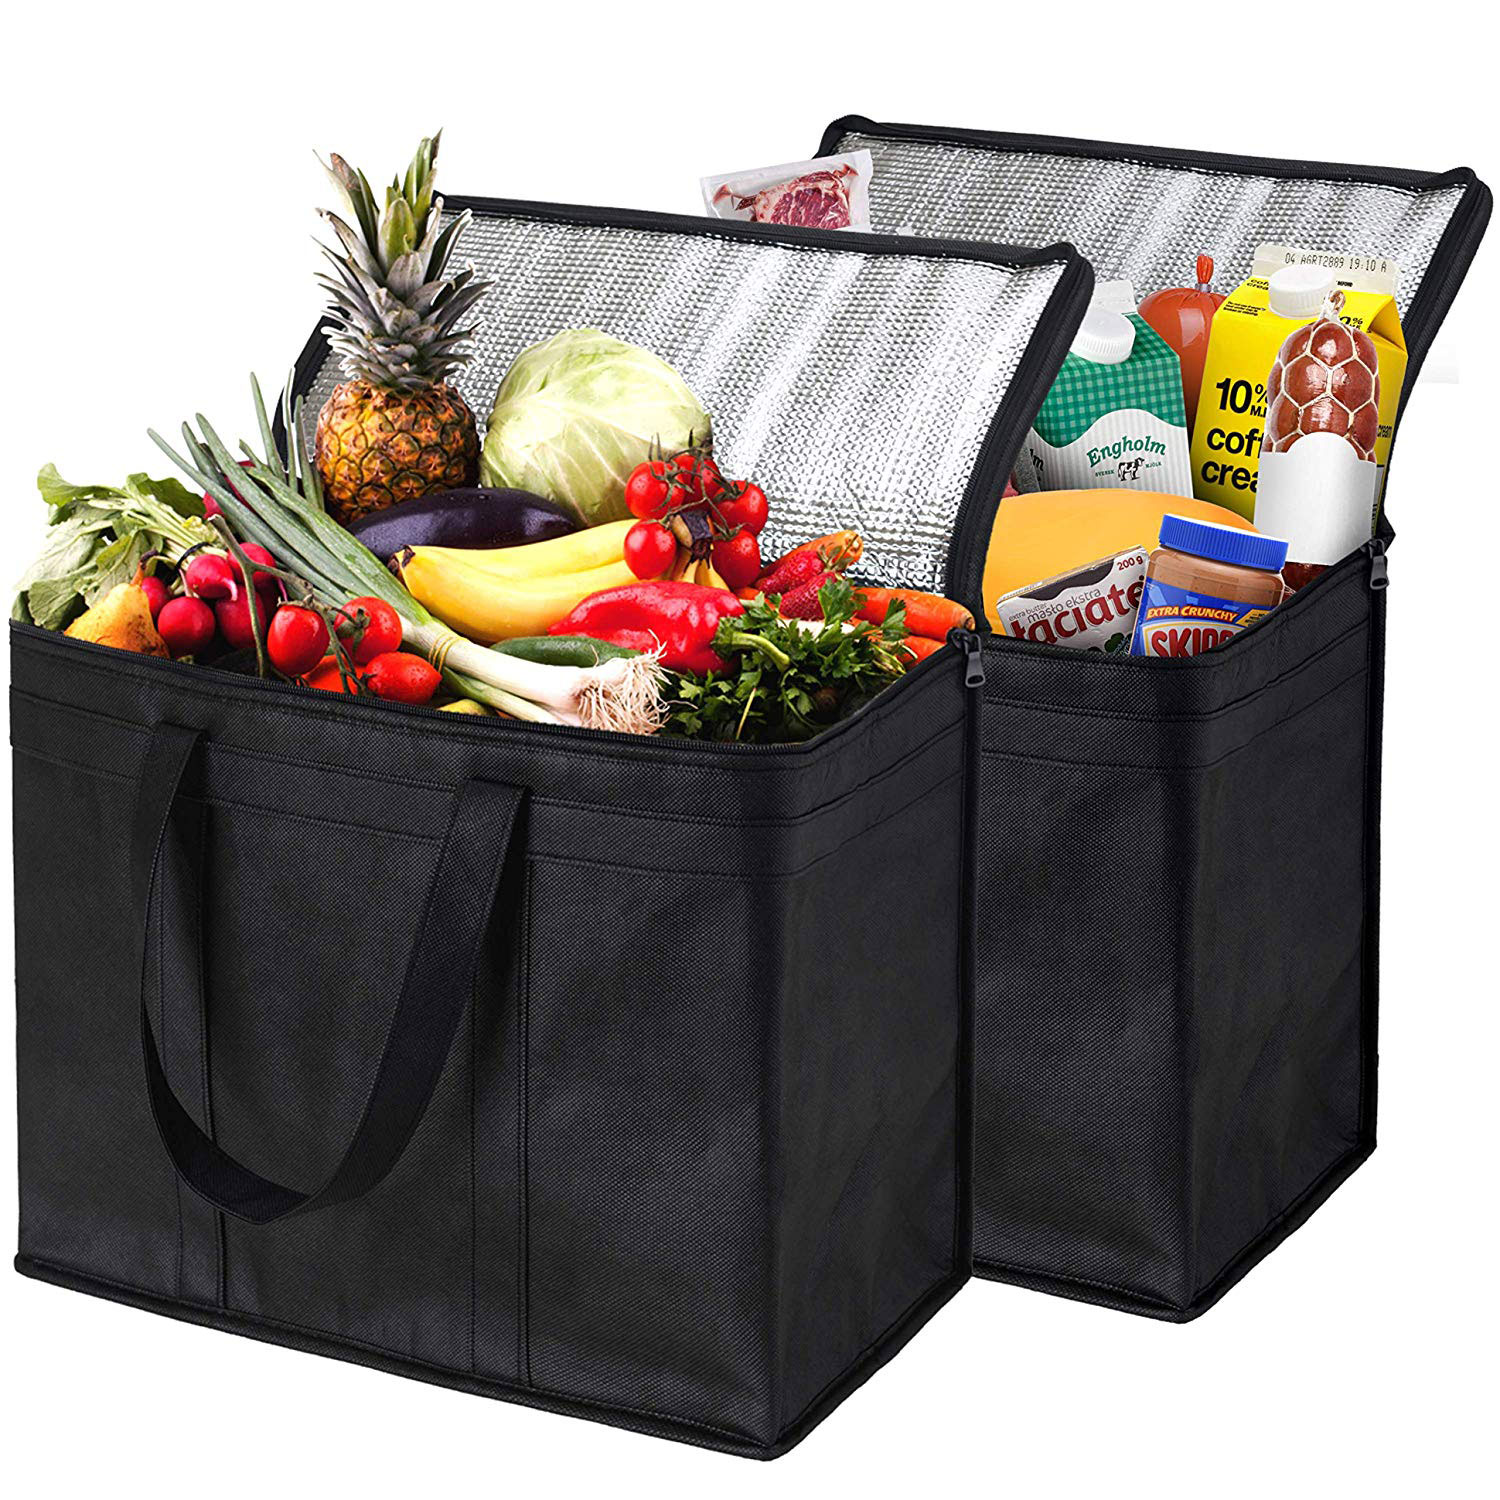 NZ Home XL Insulated Reusable Grocery Bags, Sturdy Zipper, Foldable, Washable, Heavy Duty